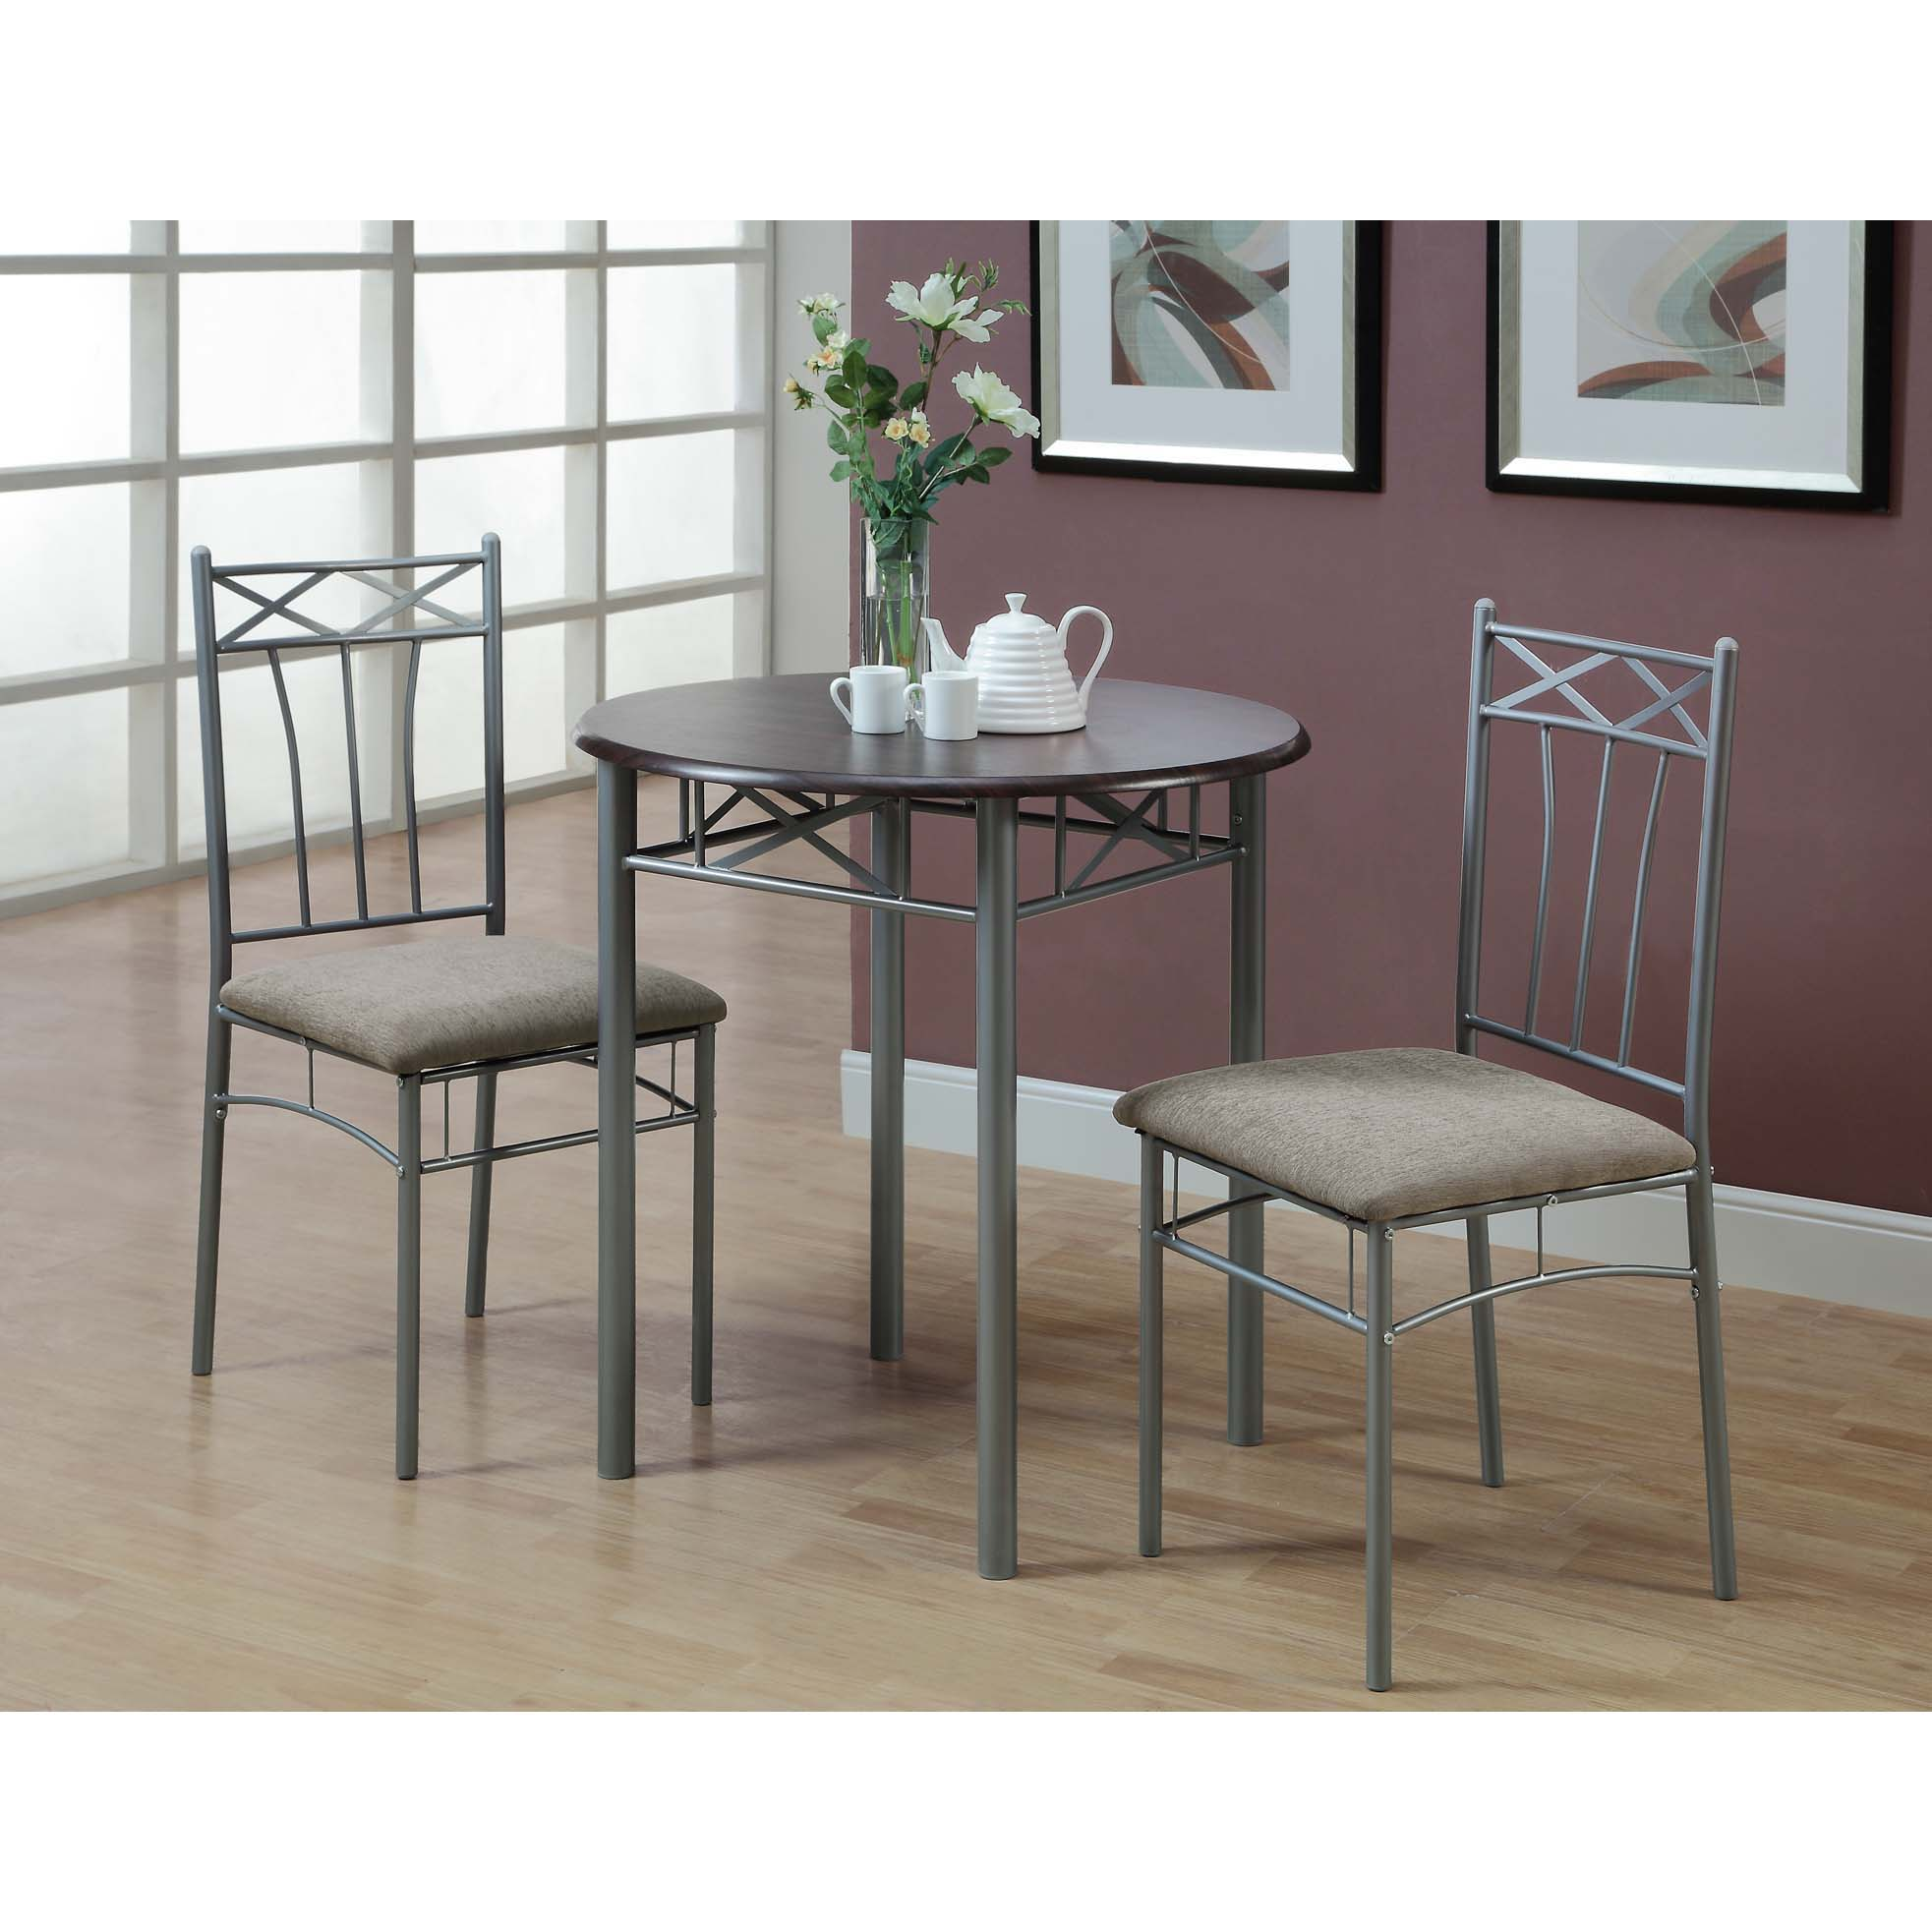 ice tall cream bistro parlor table t